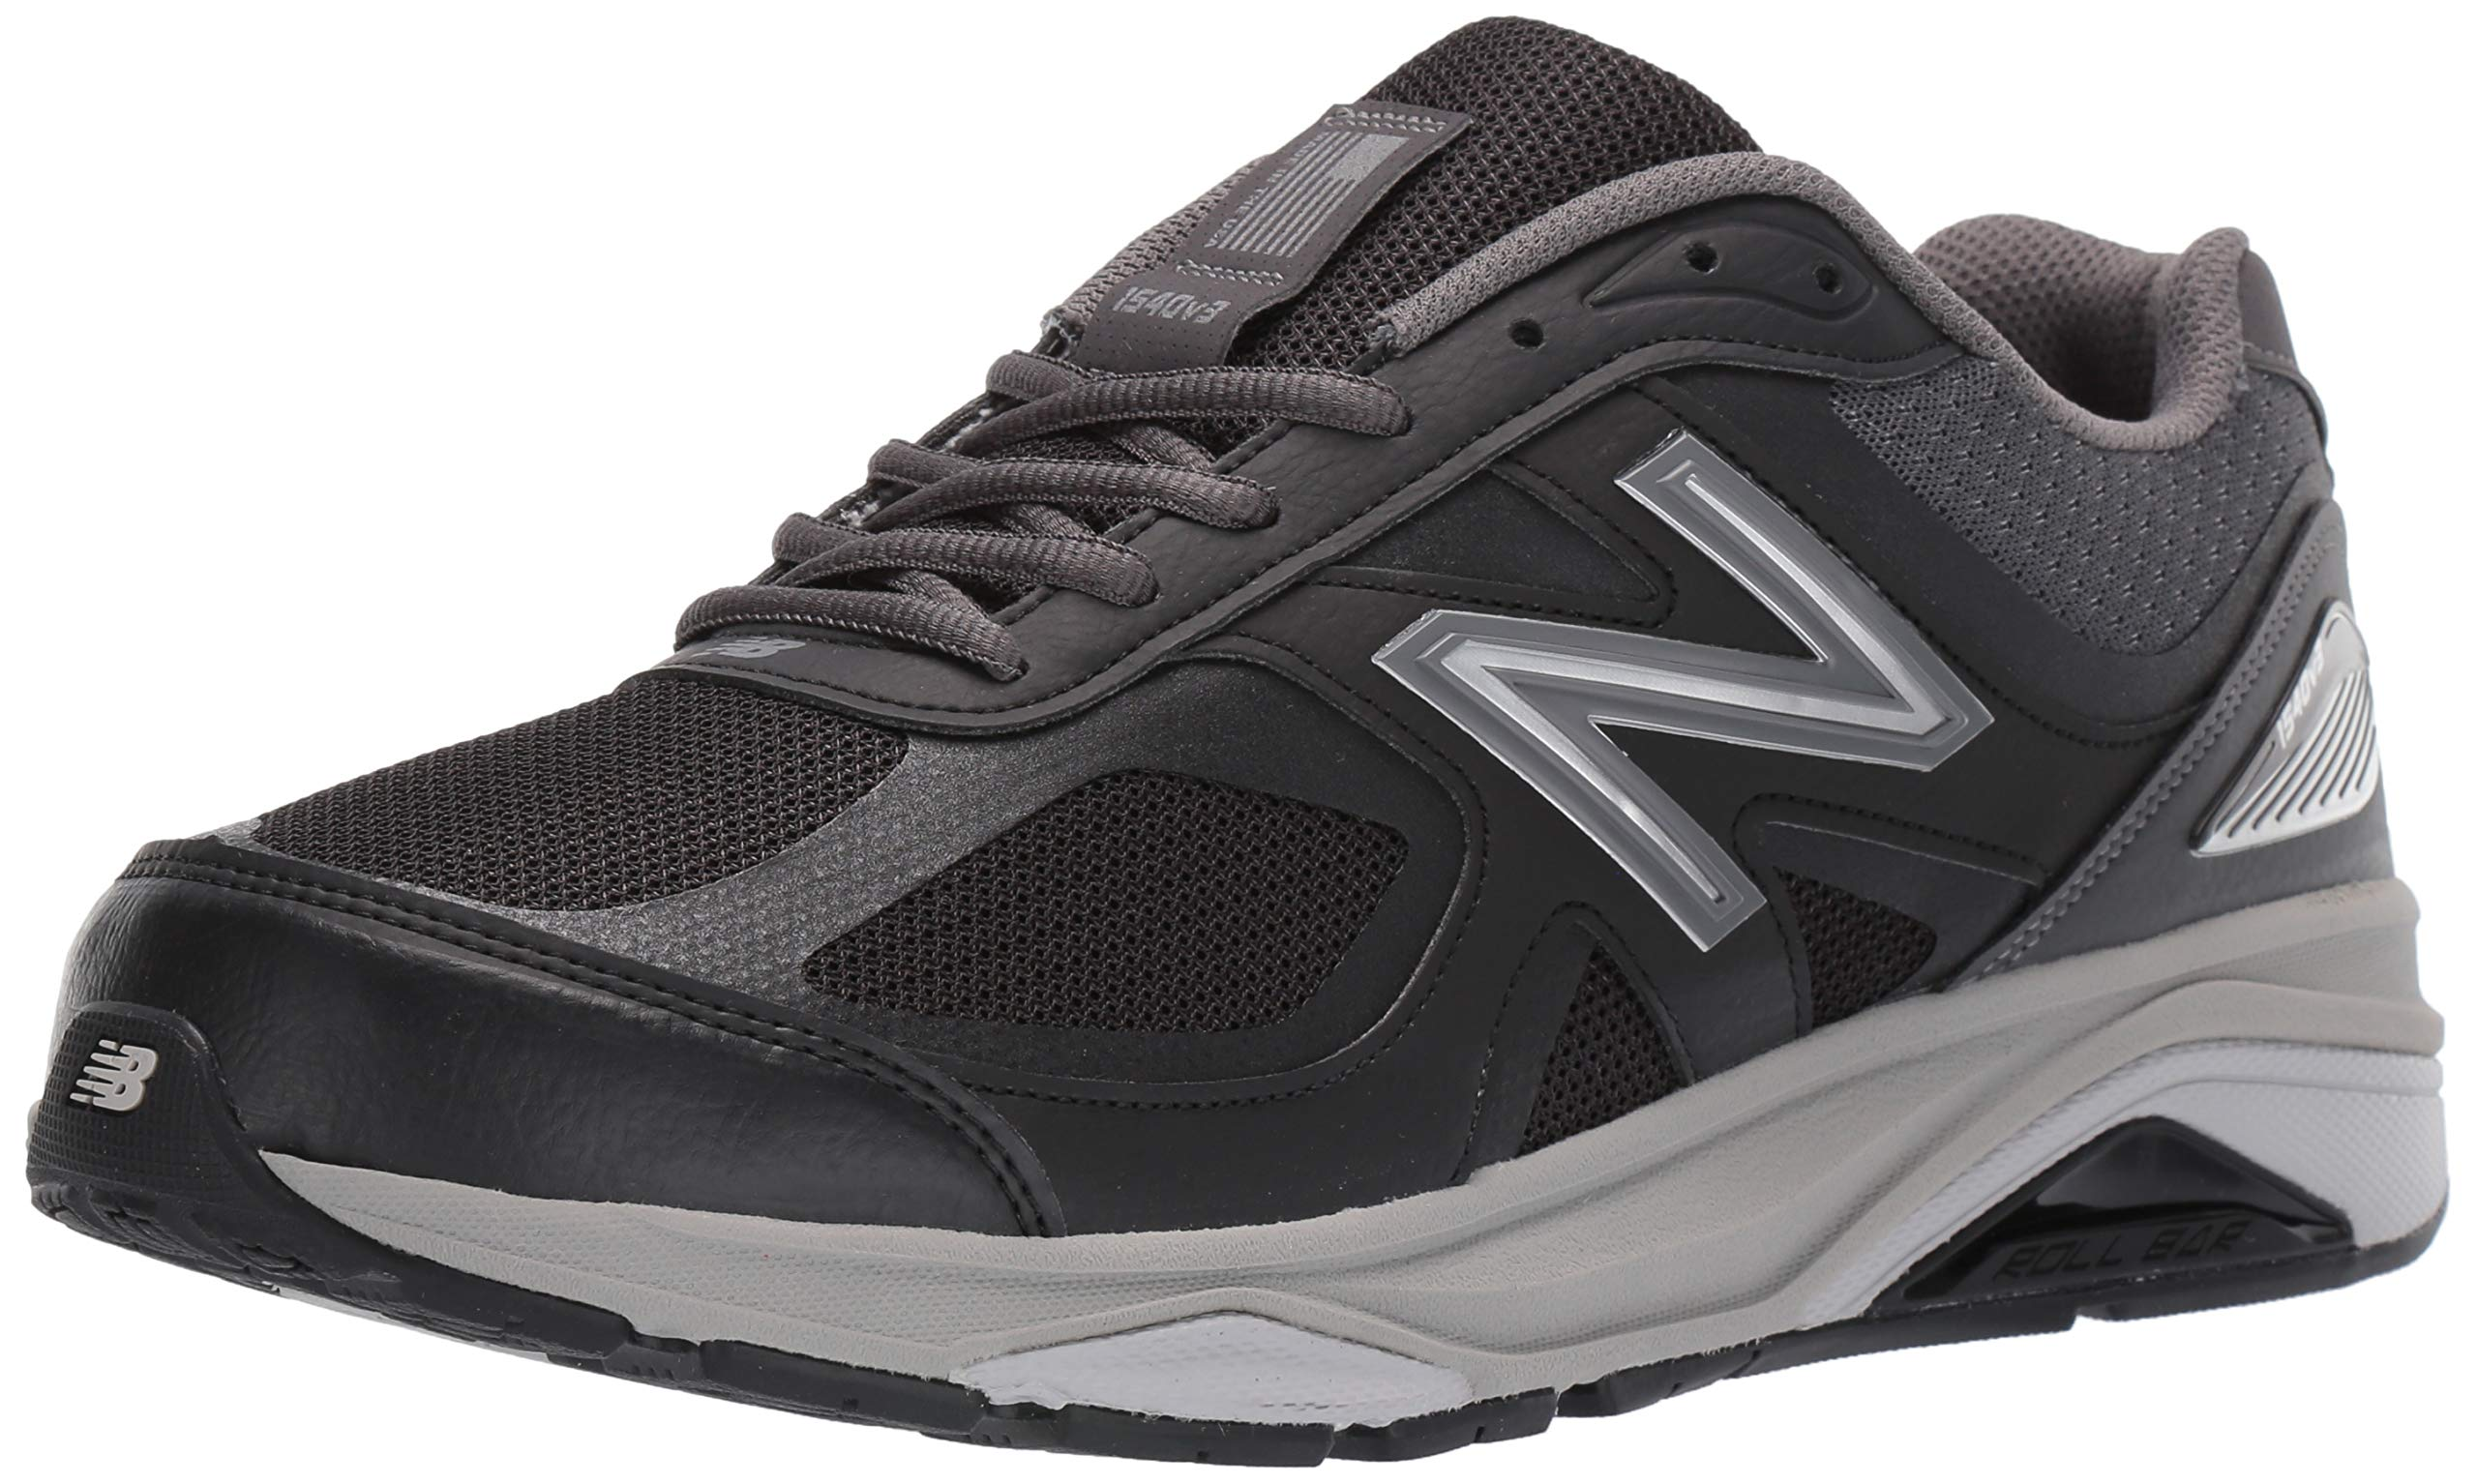 New Balance Men's 1540v3 Running Shoe, Black/Castlerock, 7.5 N US